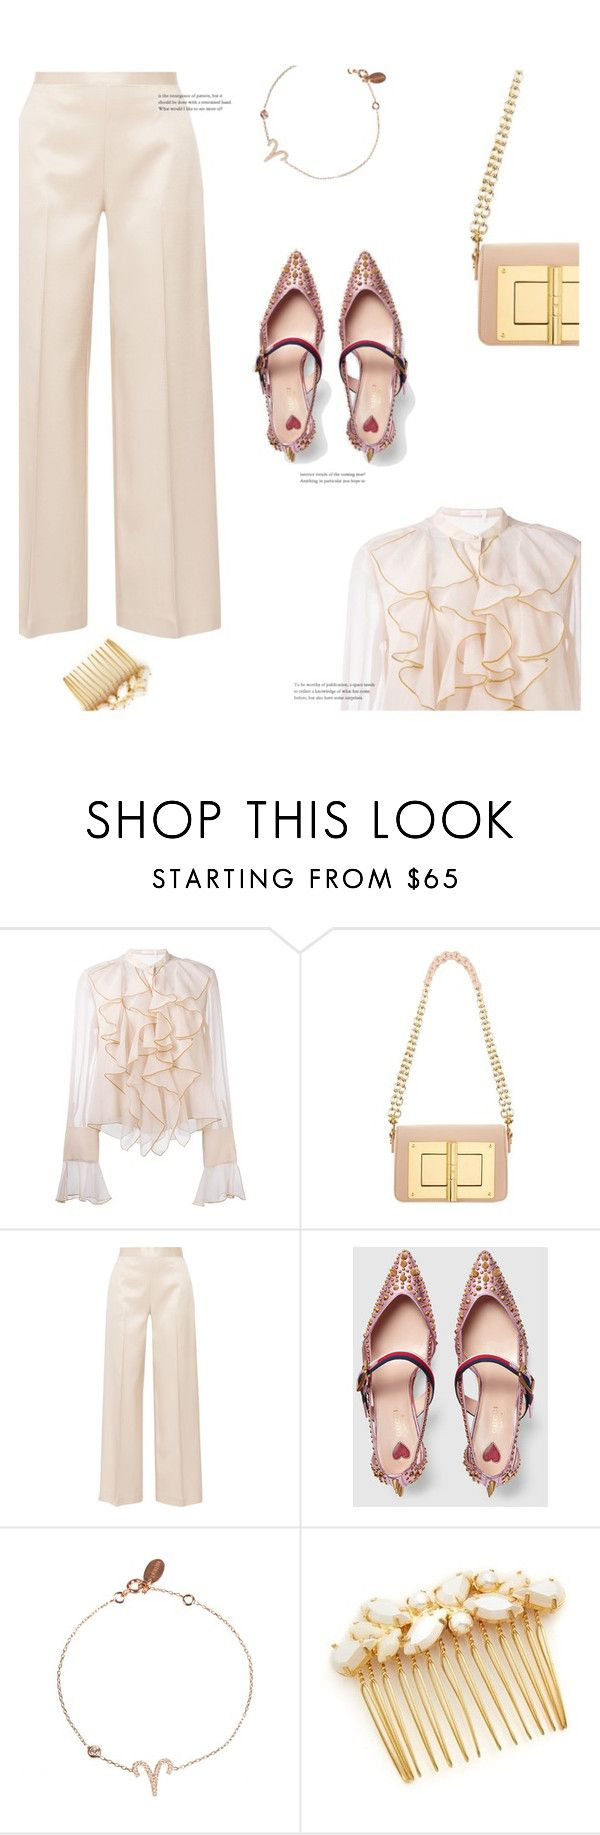 """""""♈Aries♈"""" by anja-m ❤ liked on Polyvore featuring See by Chloé, Tom Ford, The Row, Gucci, Latelita, Avigail Adam, Aries, polyvoreset and cosmicjewelry"""